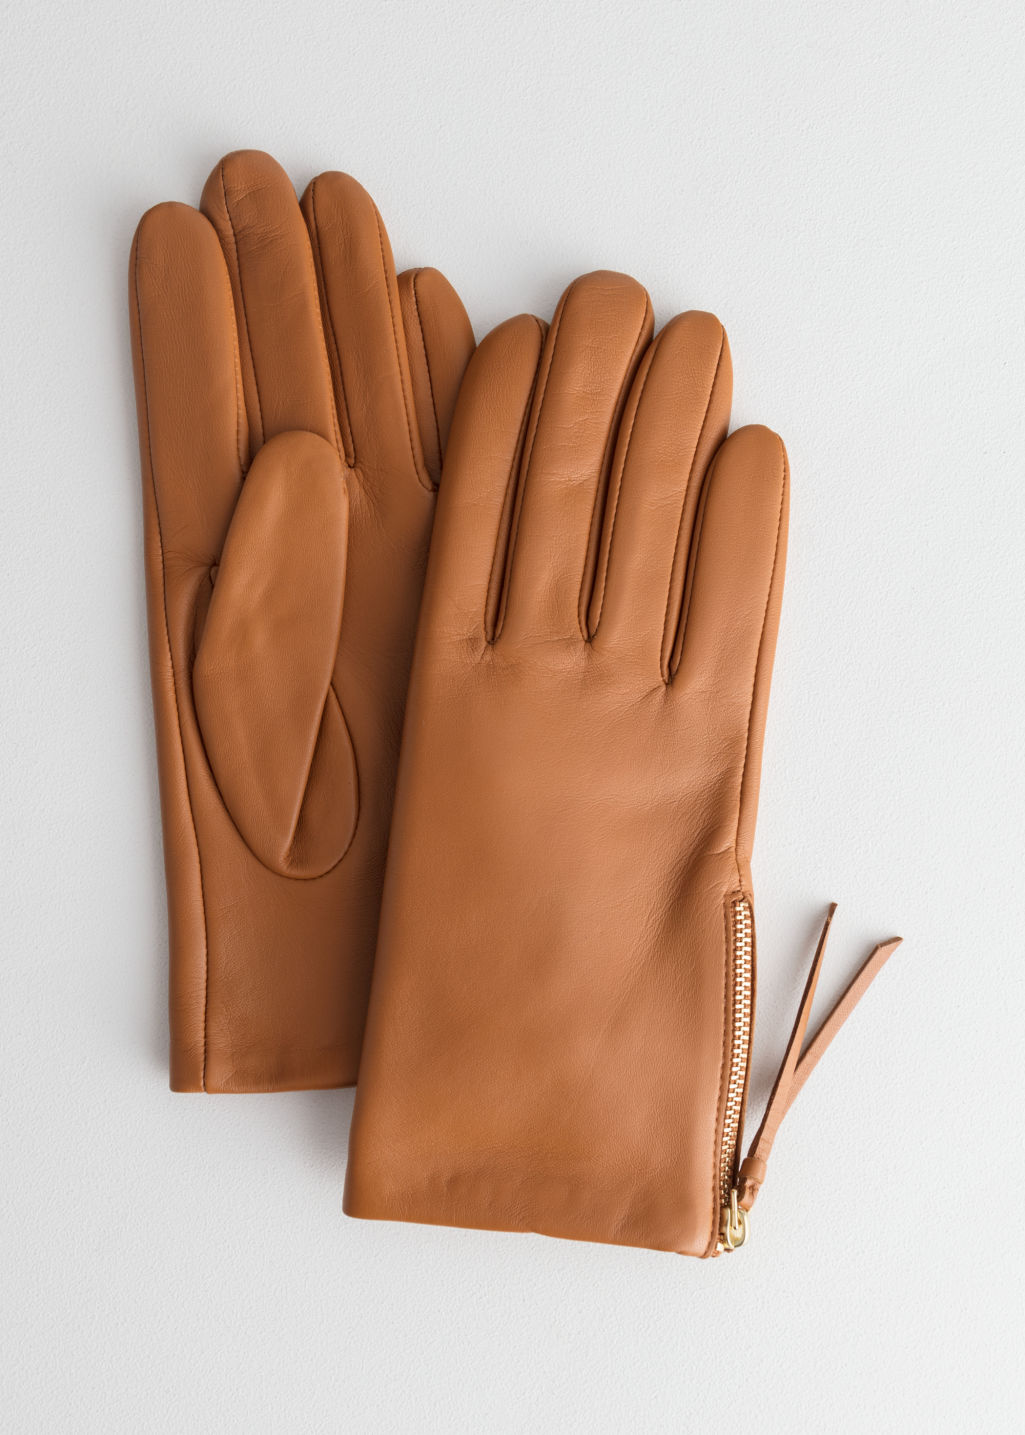 & Other Stories Side Zip Gloves